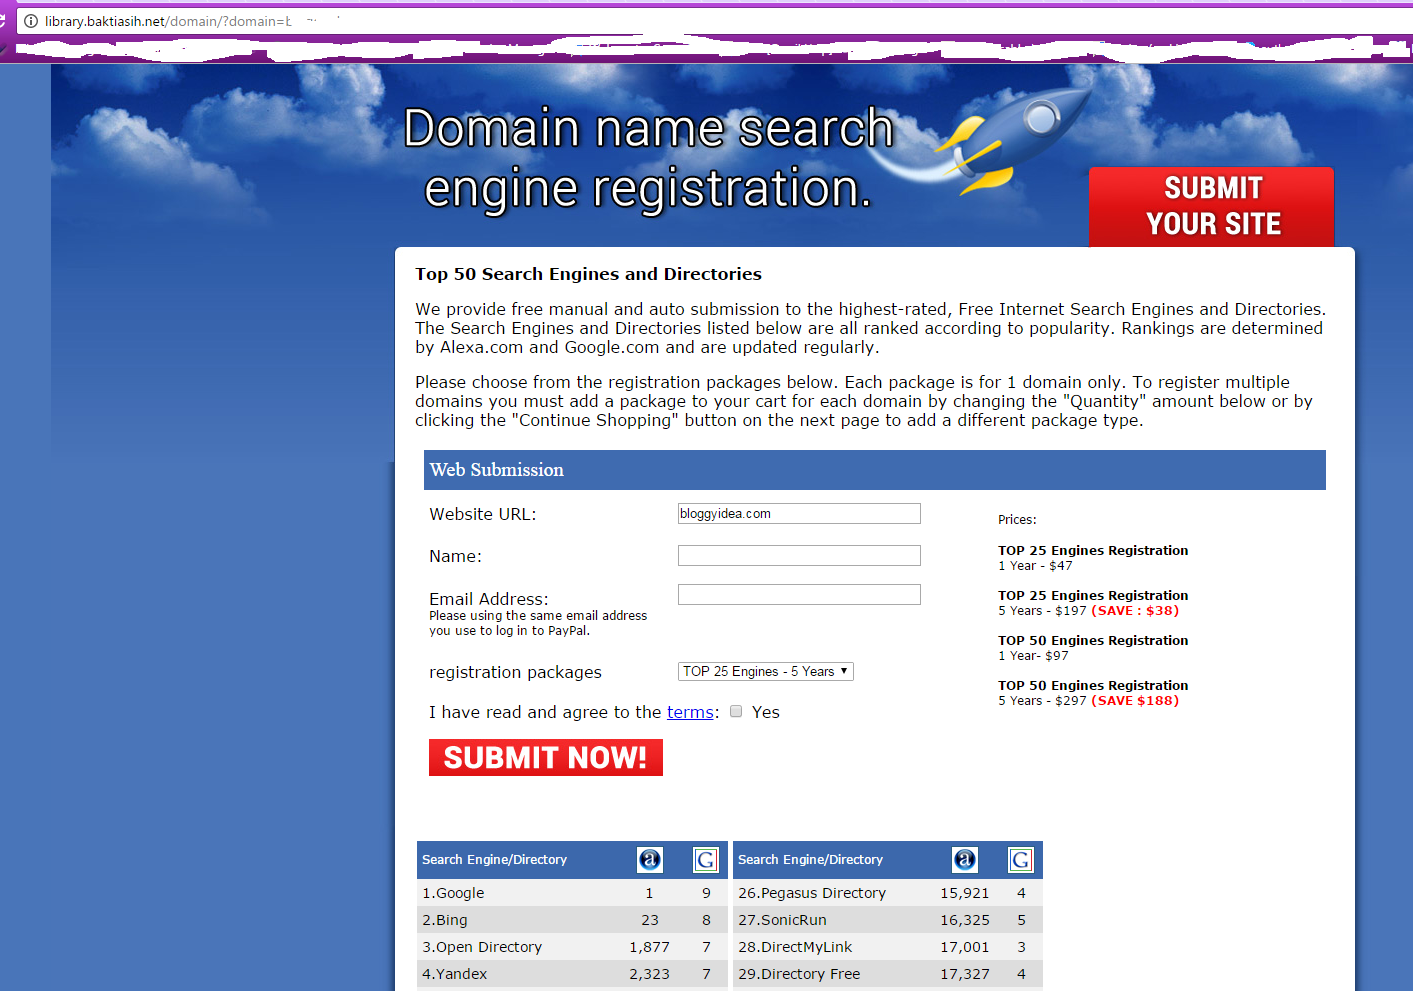 Landing page for the domain registrar scam wants to sell you fraudulent SEO services